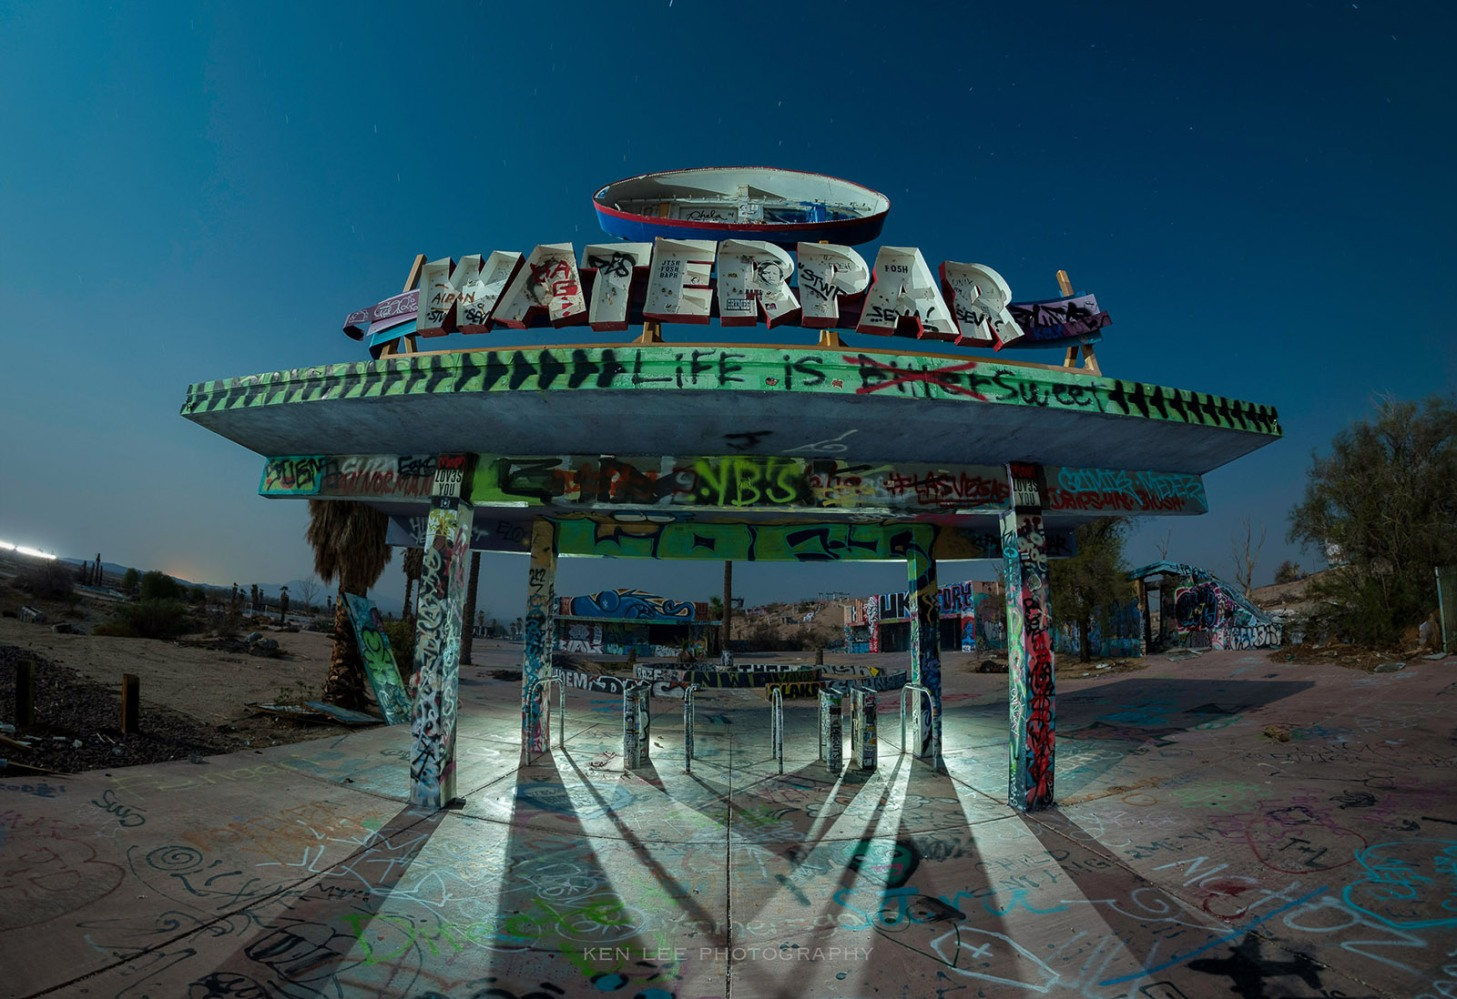 At one time, this waterpark featured waterslides where you could achieve speeds of up to 50 mph and slide down on your feet. Now, it's more popular with taggers, skateboarders and urban explorers.